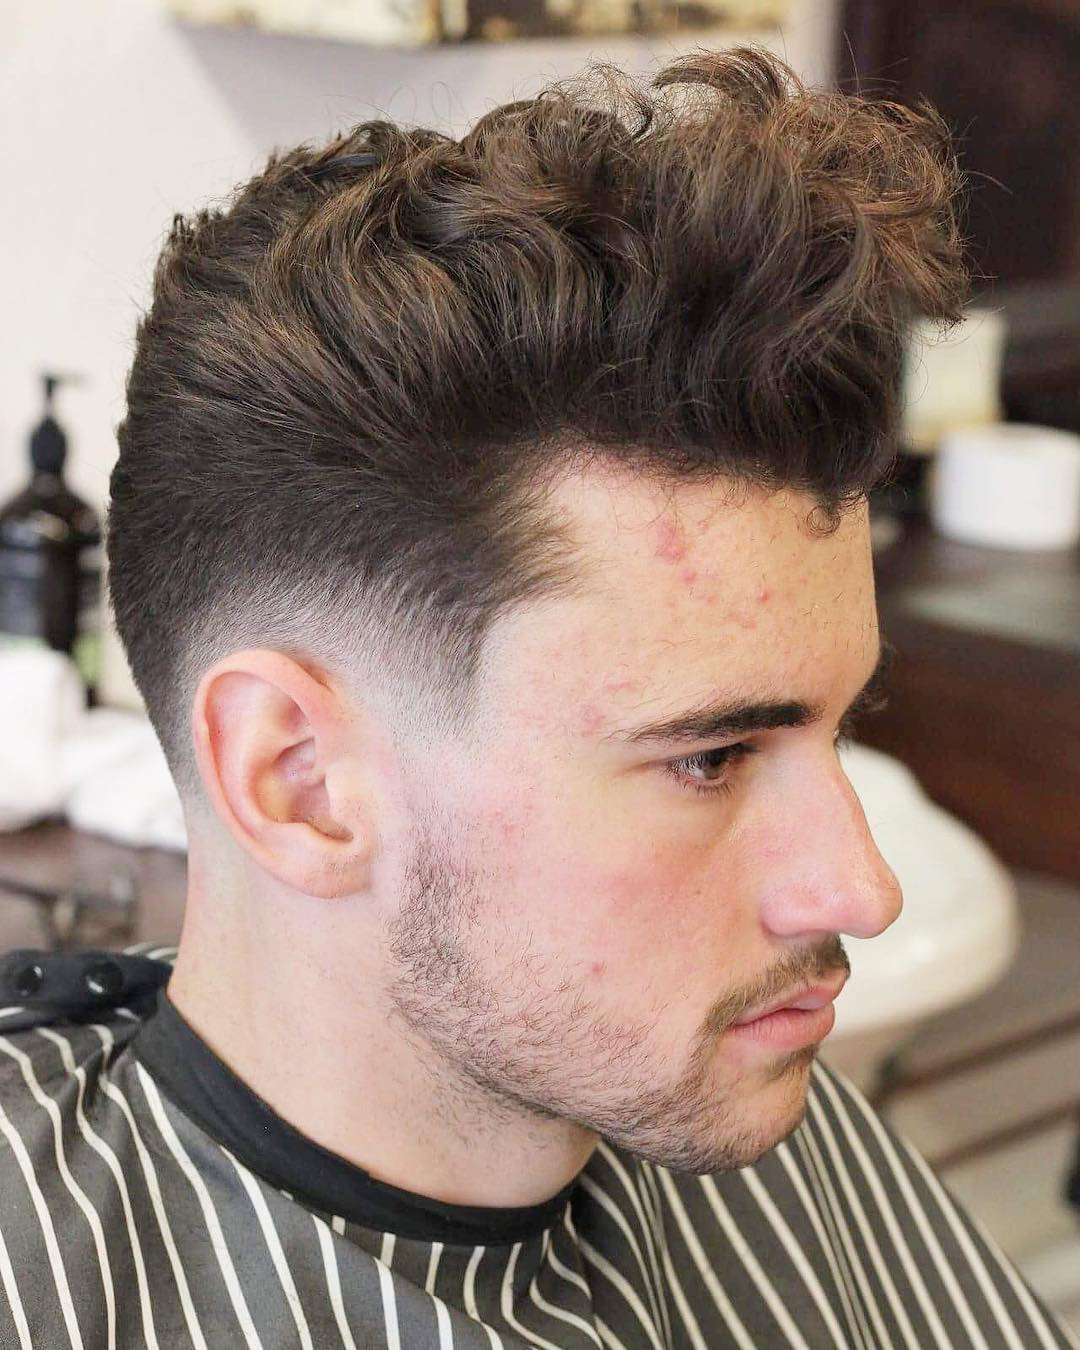 hair styles for curly hair men stylish haircuts for 2017 5085 | musketandbayonet wavy pomp textured low skin fade cool mens hair